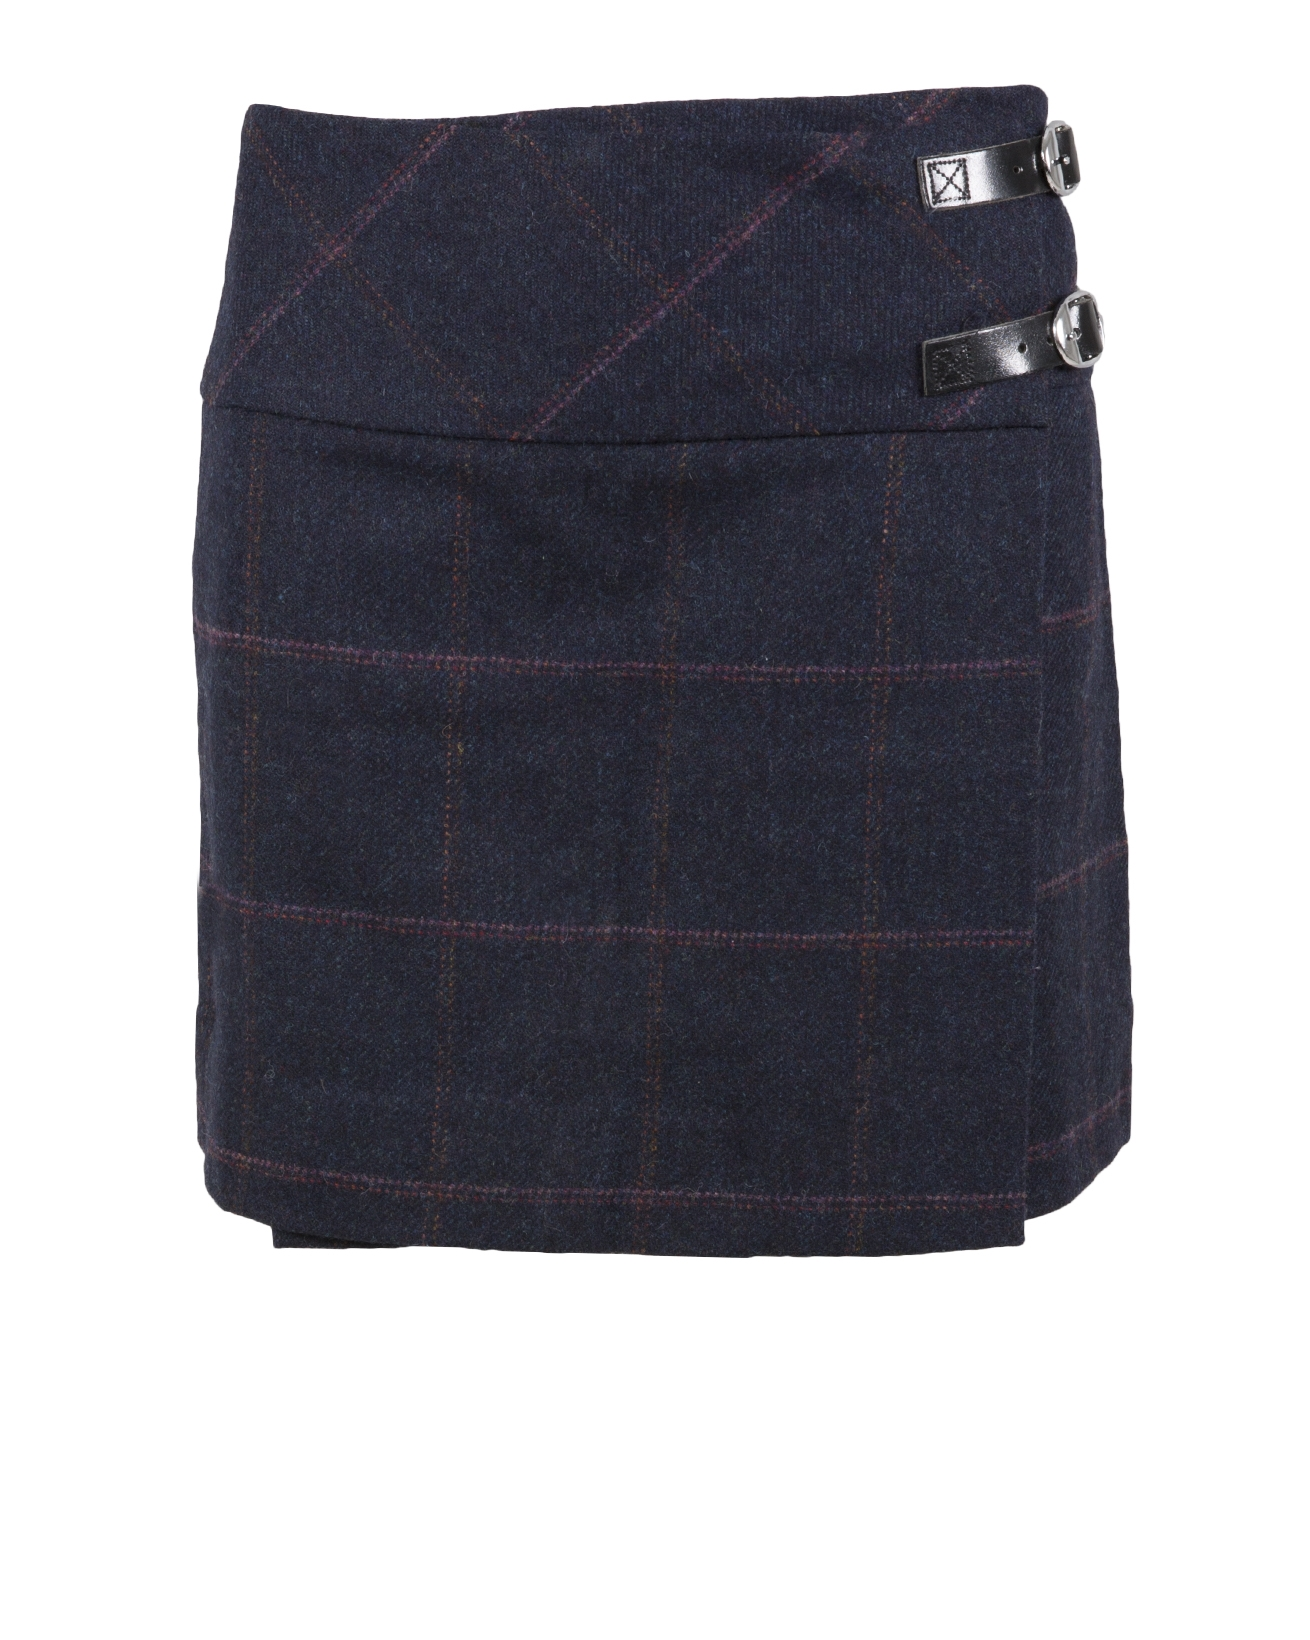 Wool Skirt - Size 10 - 277